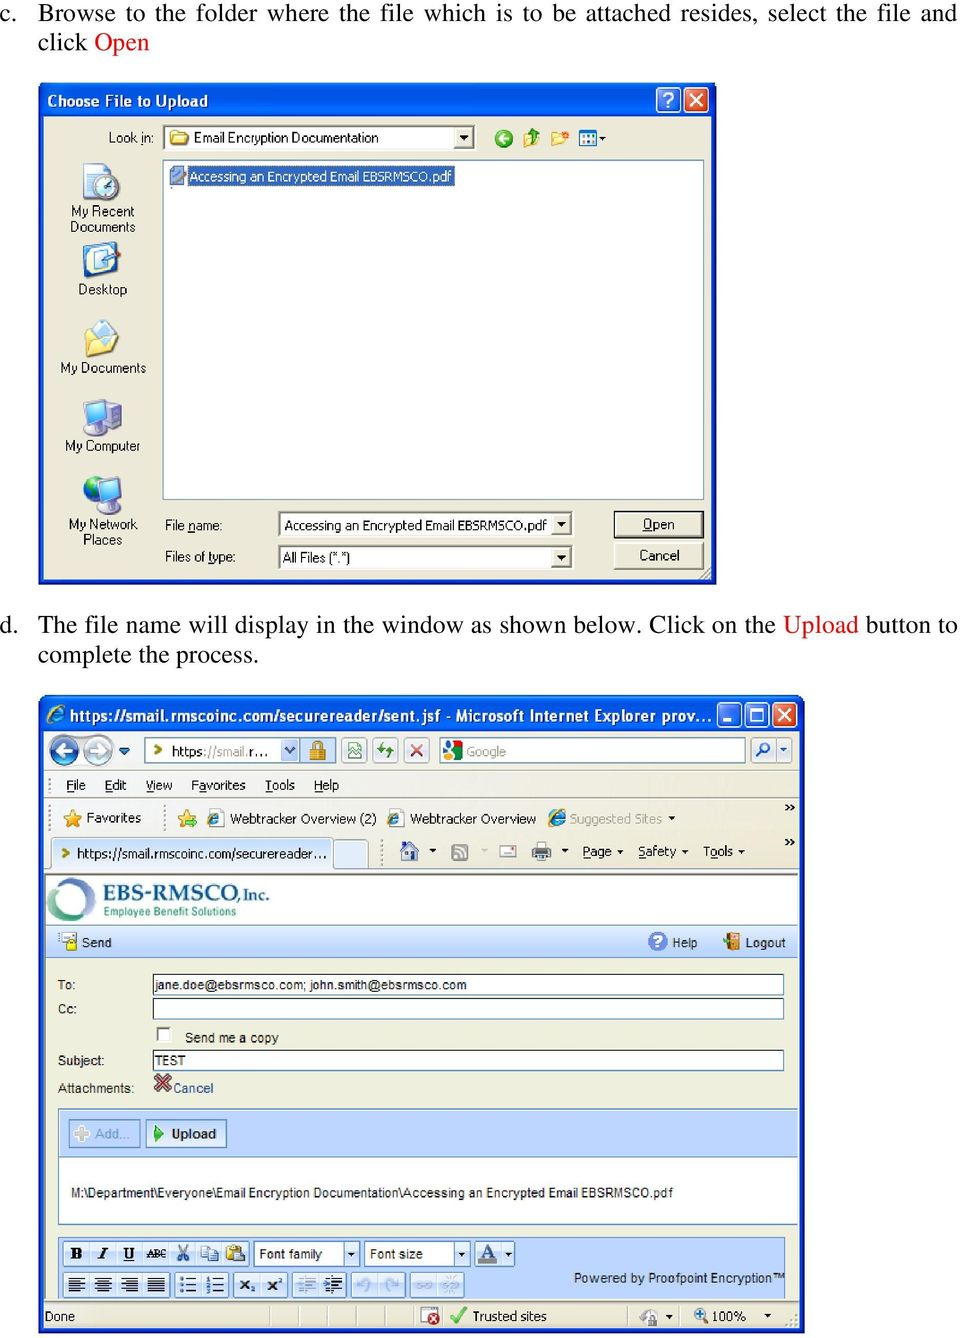 The file name will display in the window as shown